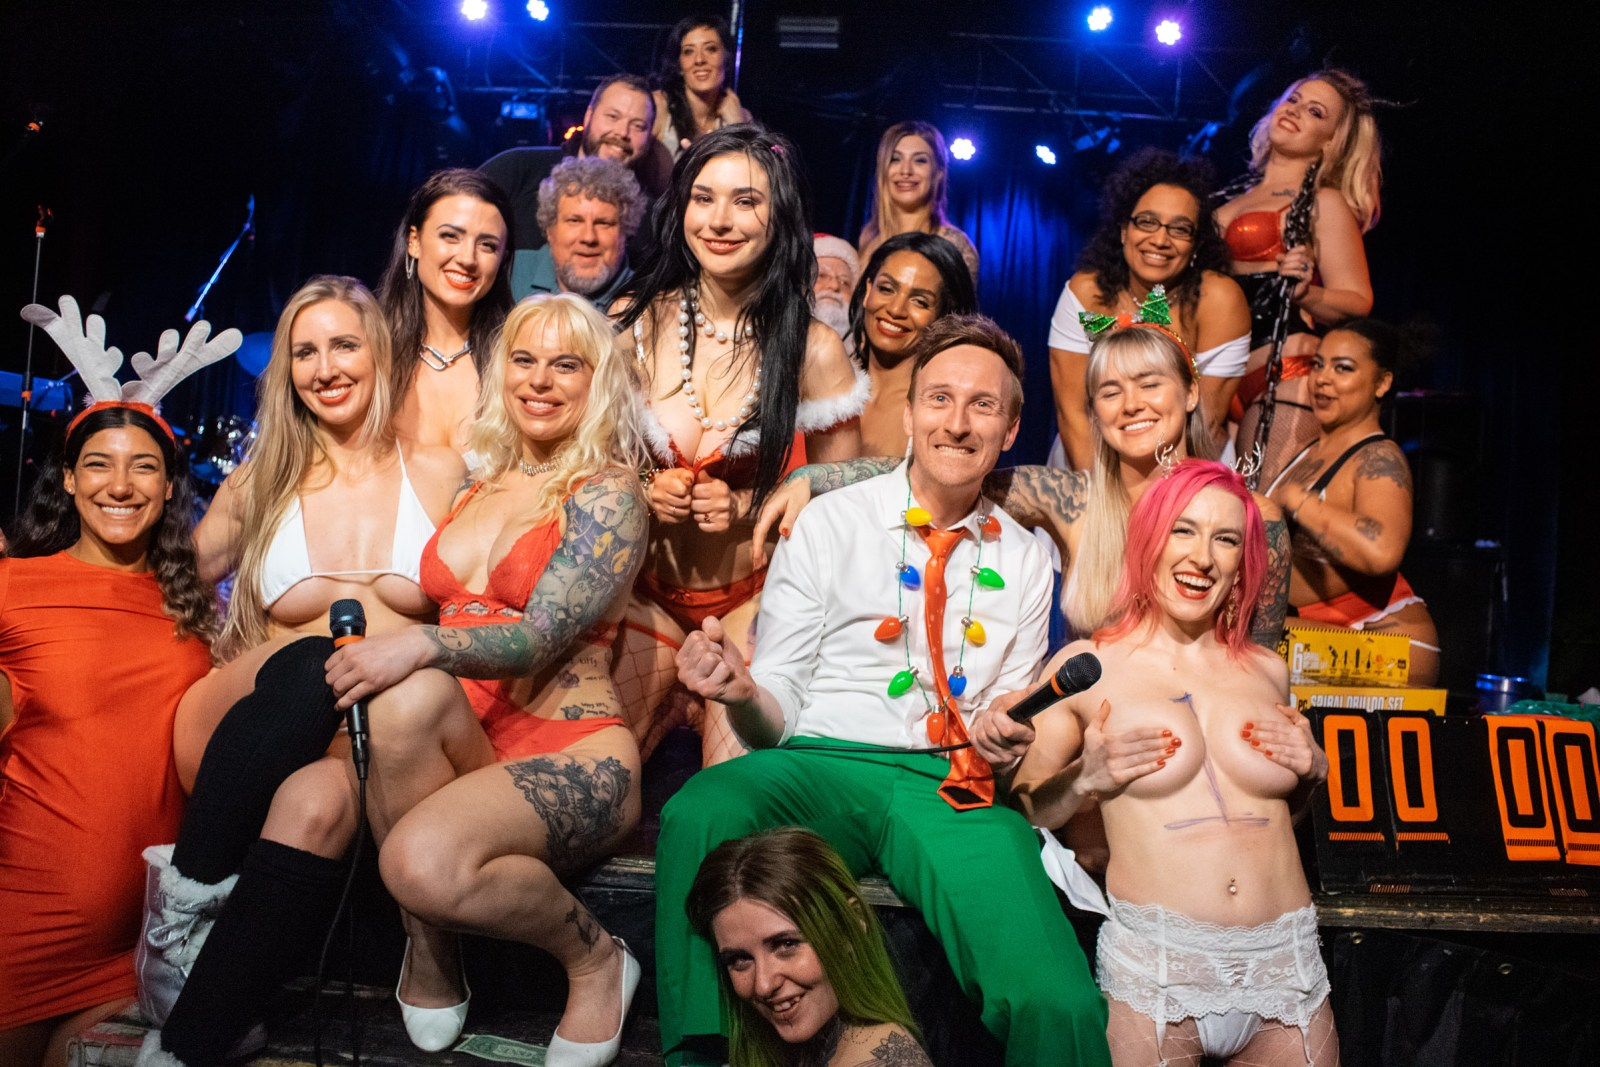 """""""Tatas for Toys"""" 2019 fundraiser charity strippers portland pdx oregon Dante's live Aaron Ross comedian Toxic dancers Xmas holidays benefit comedy funny party Doernbecher wild sexy hot babes"""